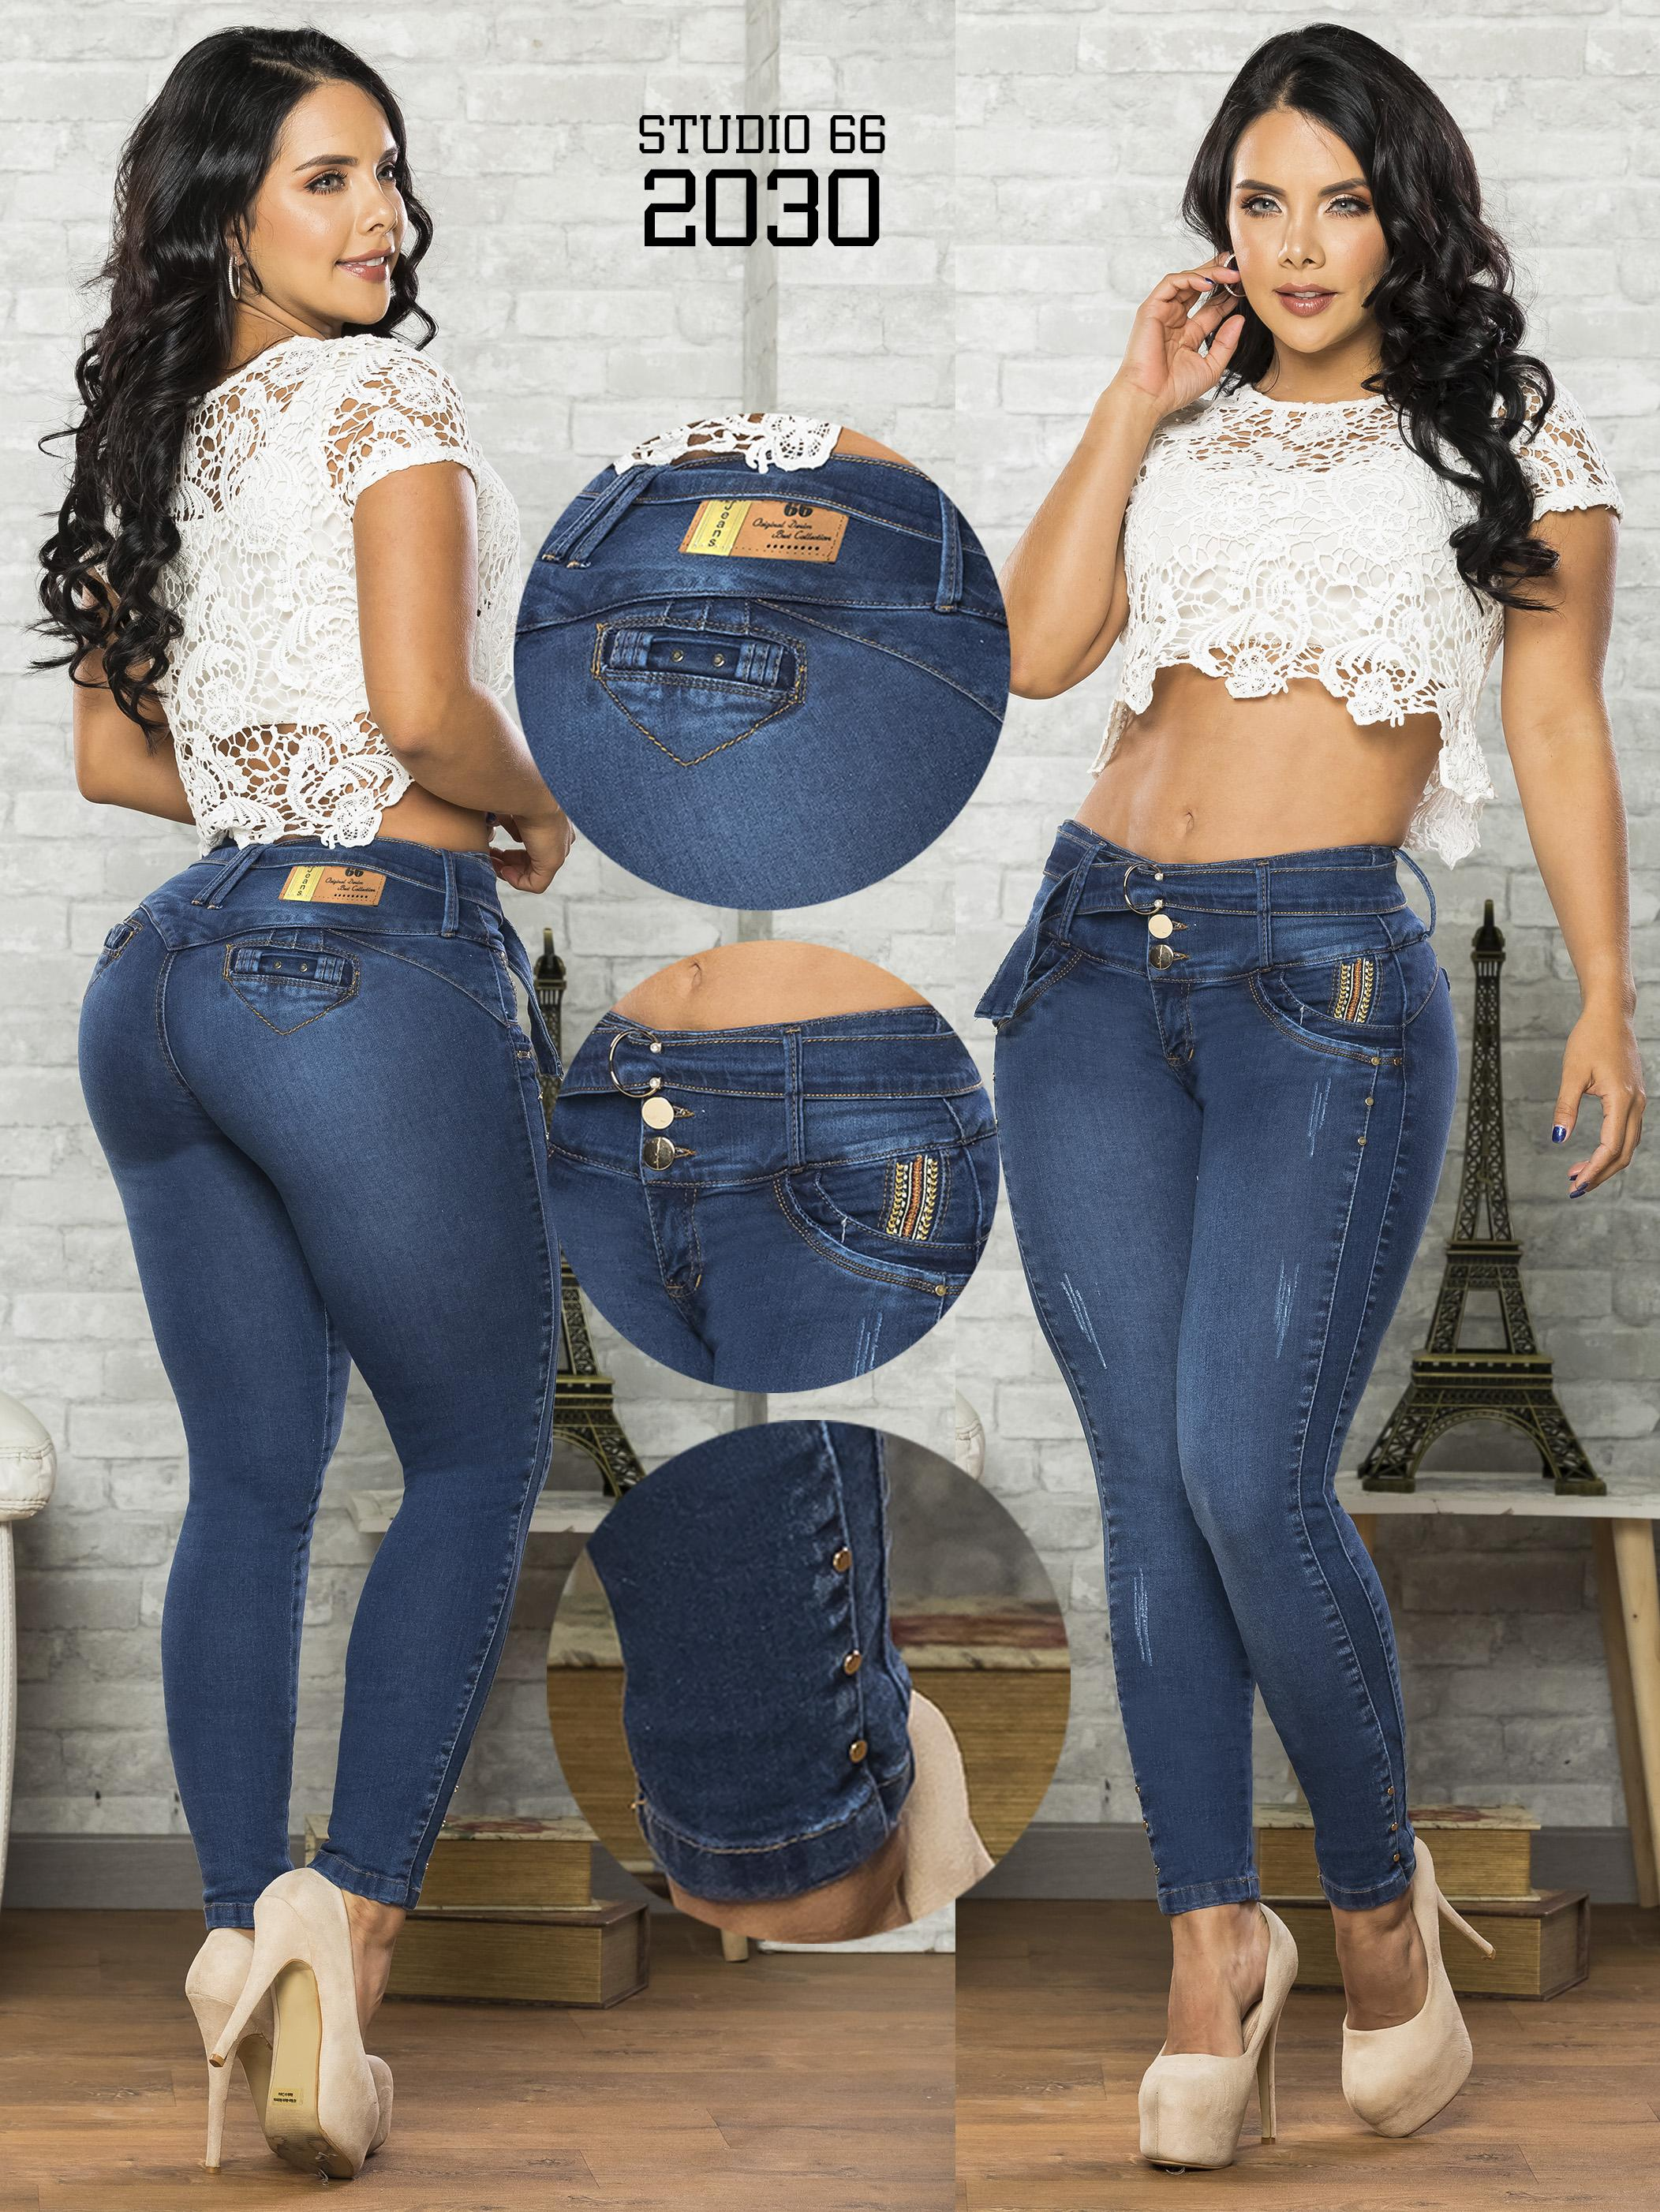 Vaqueros jean push up colombianos